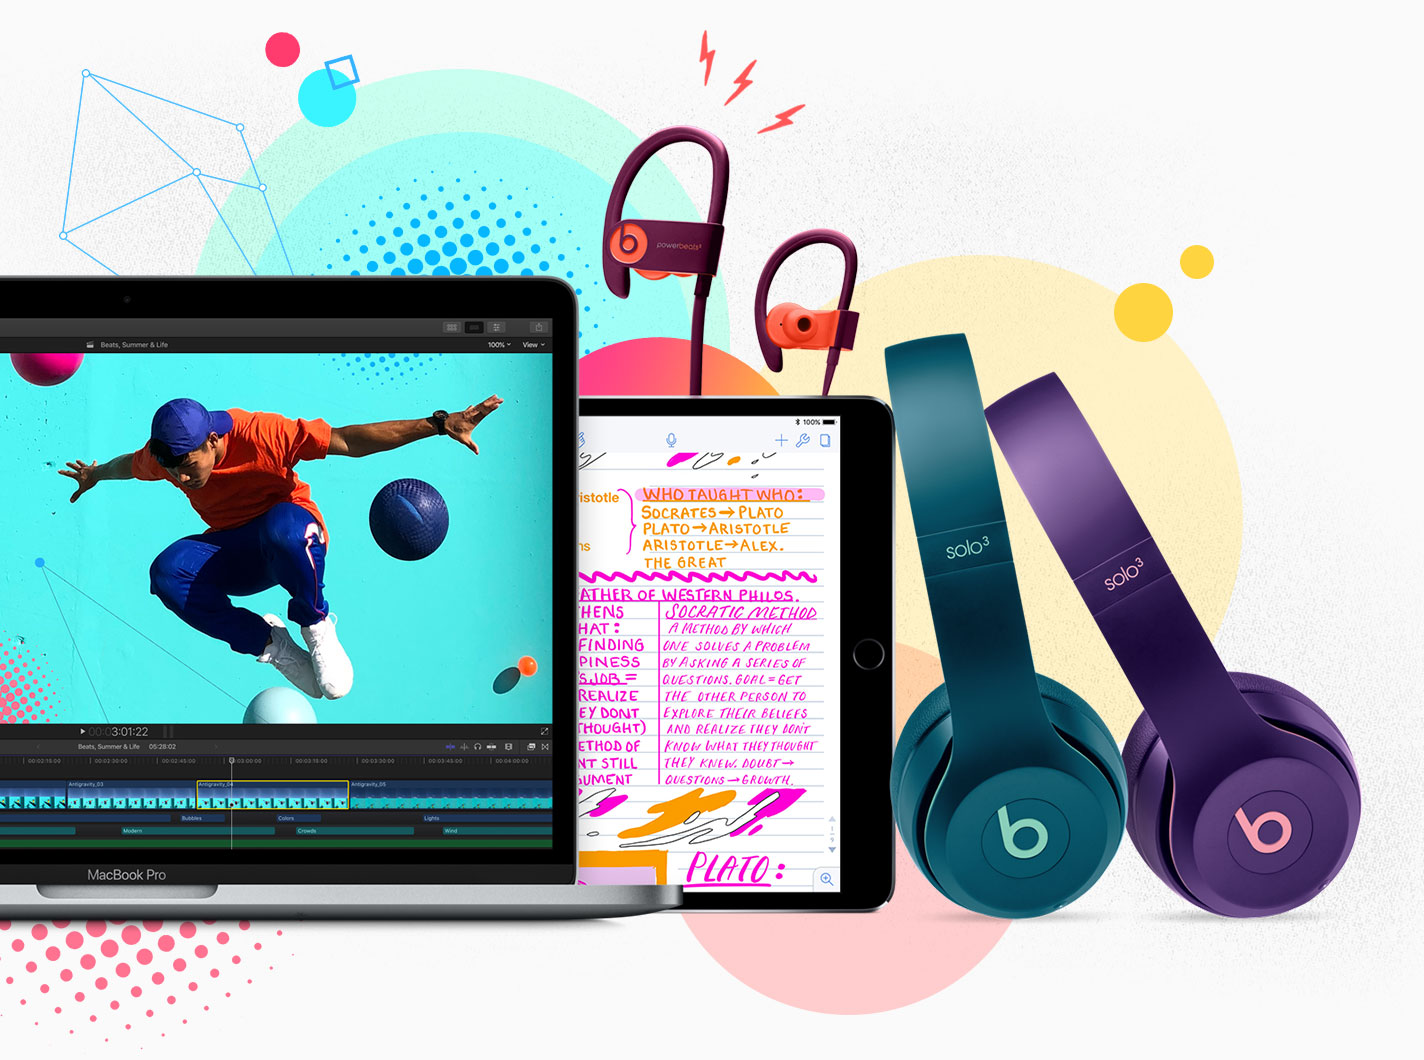 b4eca095a09 Get Apple education pricing on a Mac or iPad Pro for college. We'll supply  you with a pair of Beats in exclusive Pop Collection colors.